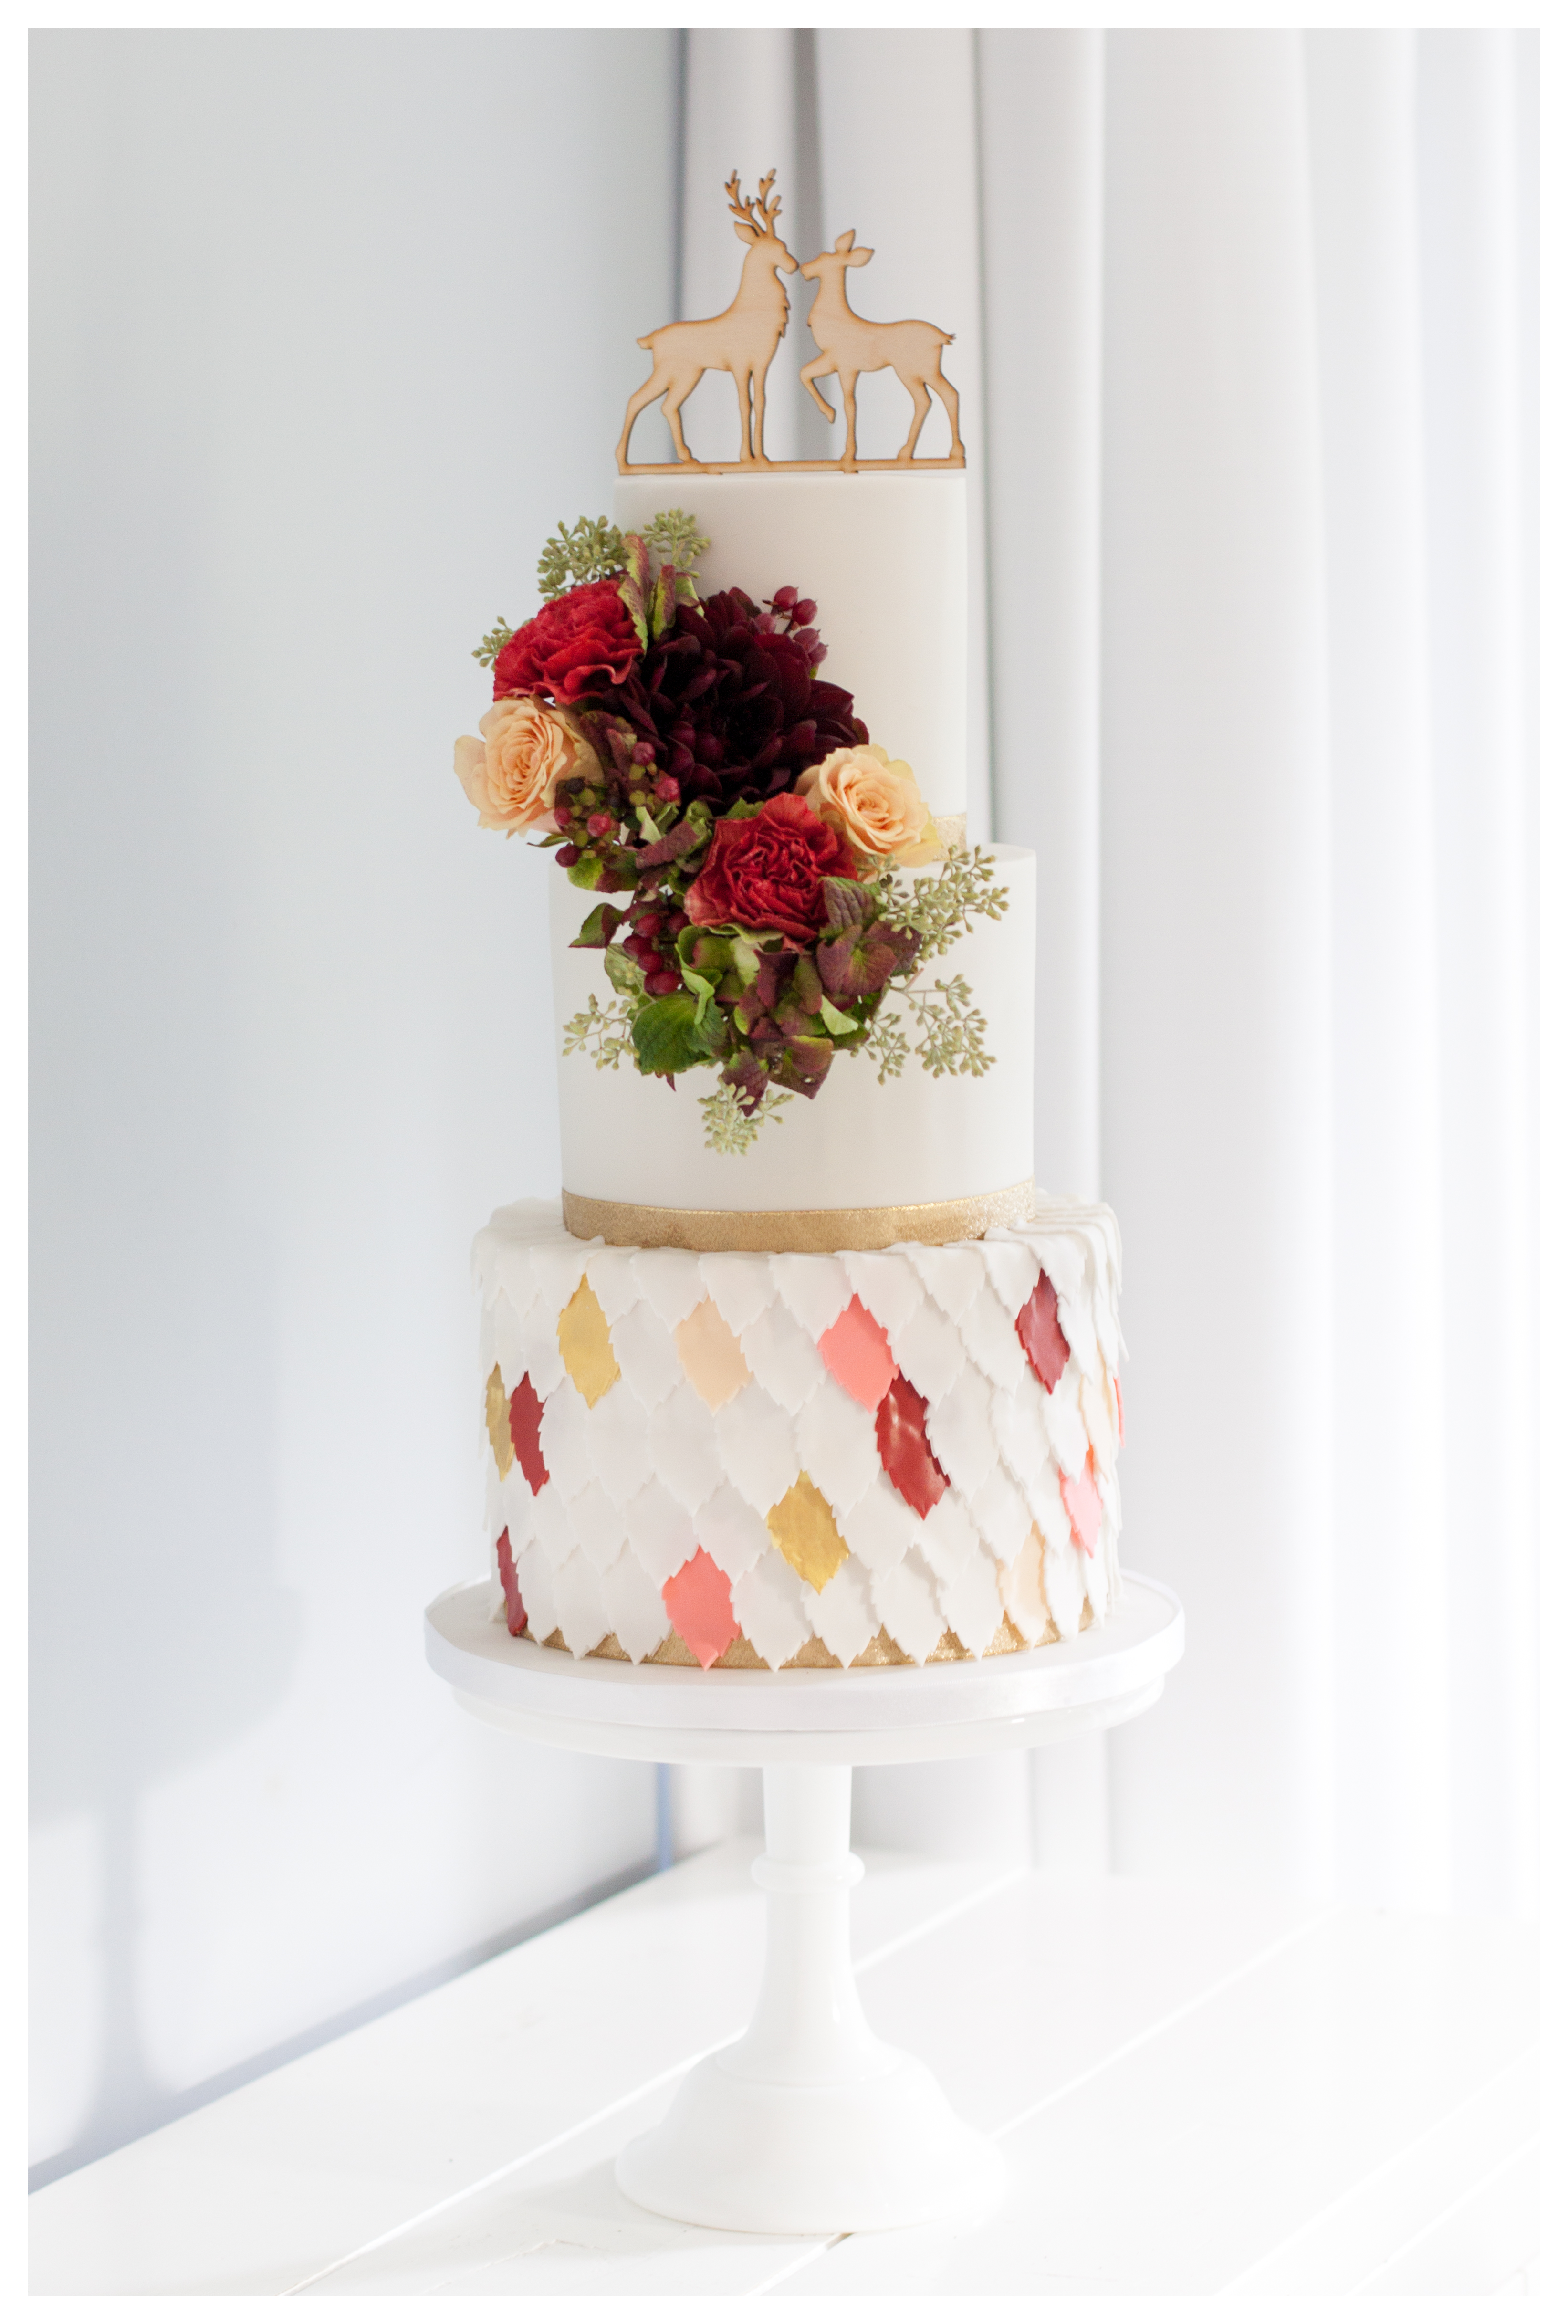 White forest themed wedding cake with scalloping